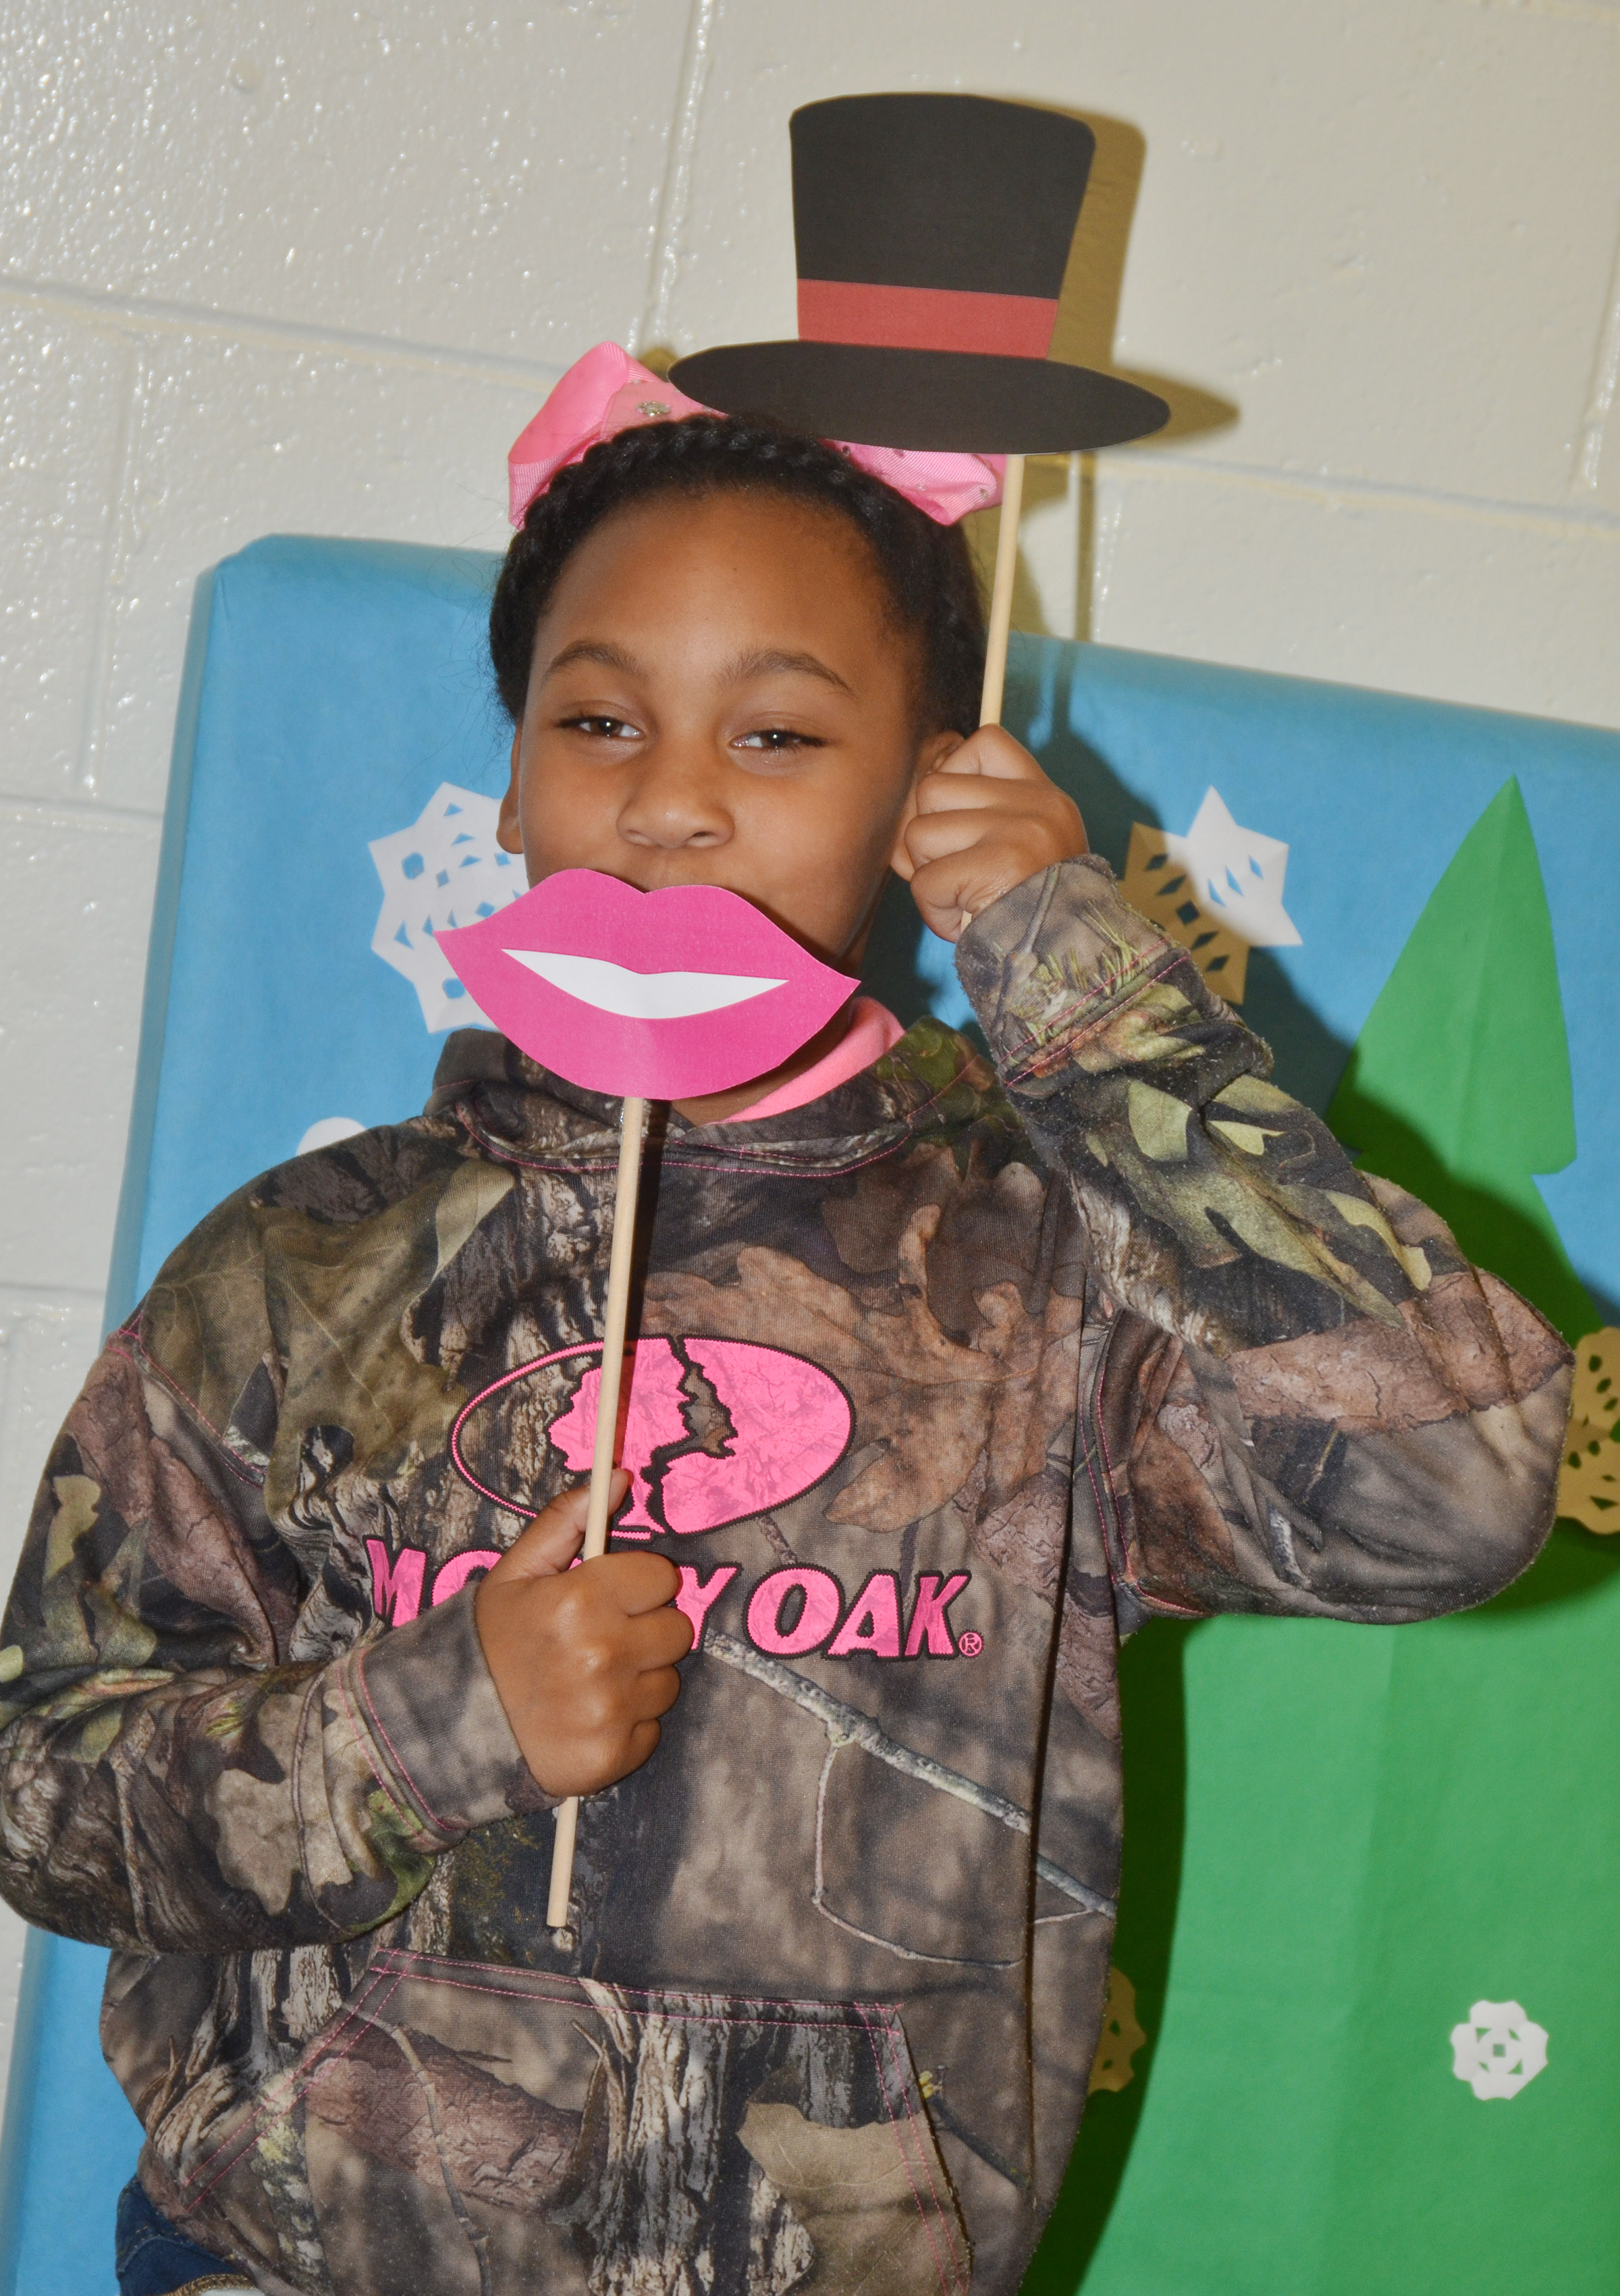 CES second-grader Aliy Dunn poses for a photo.